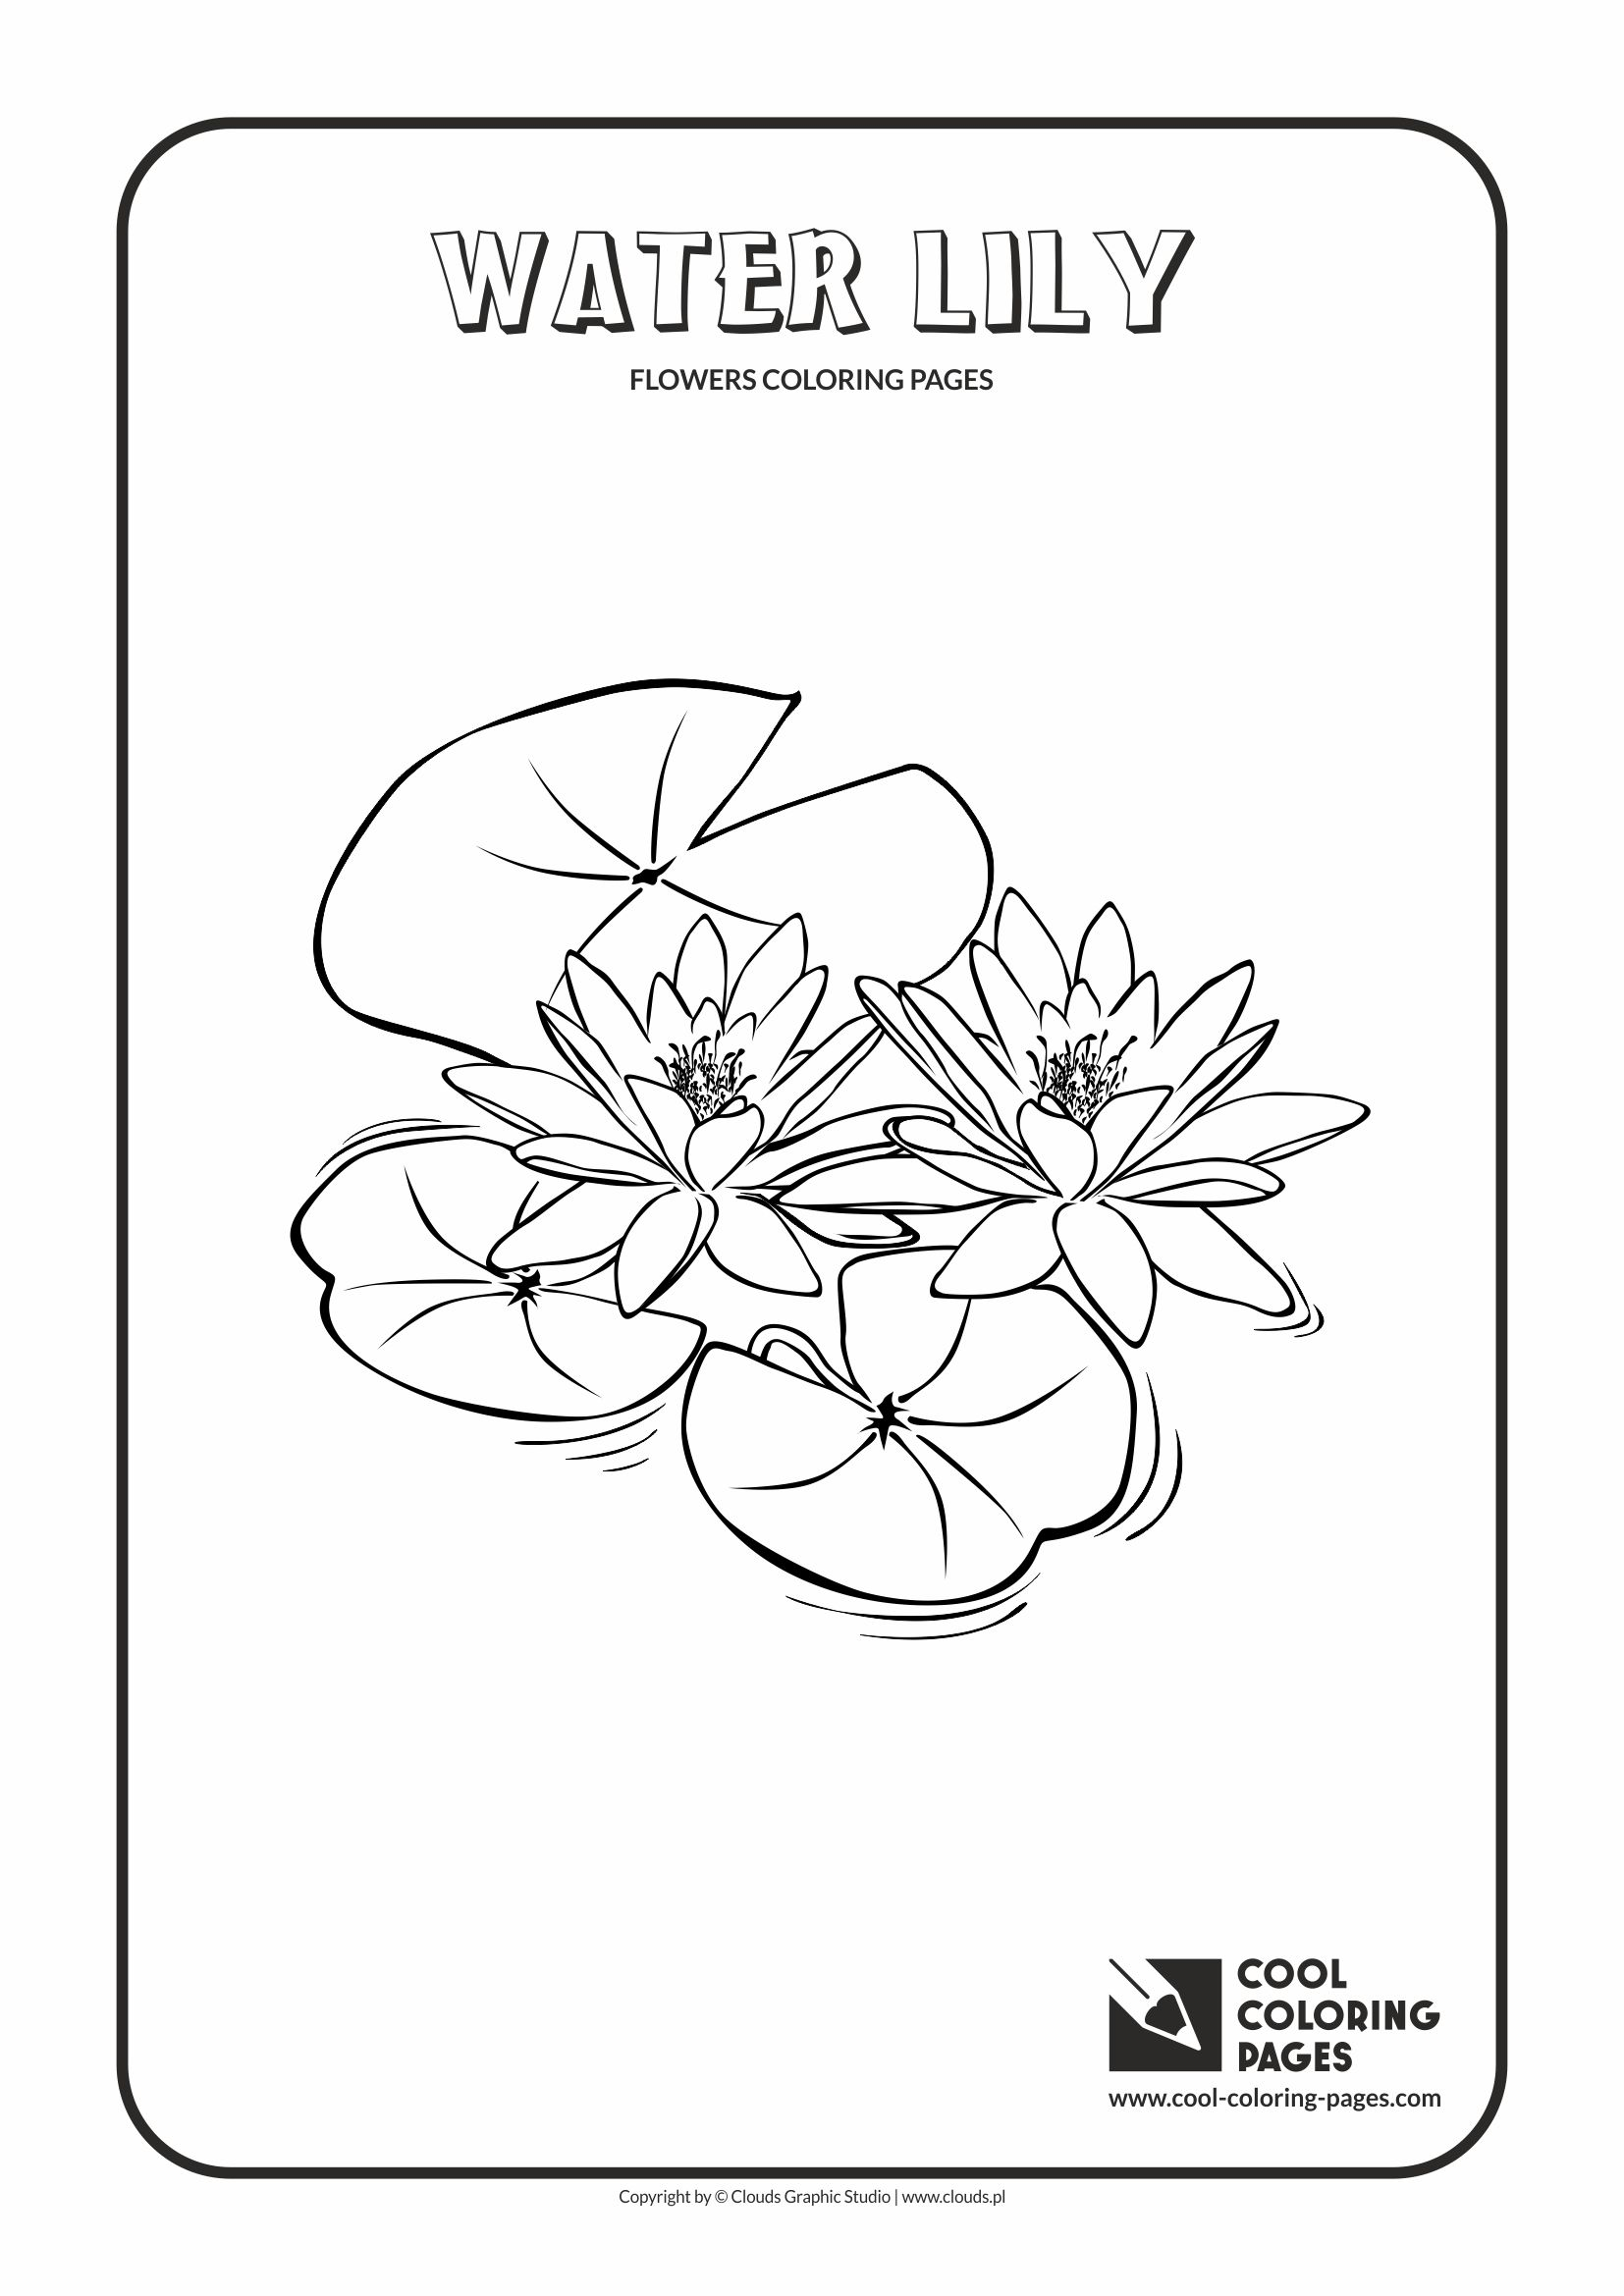 Cool Coloring Pages Flowers coloring